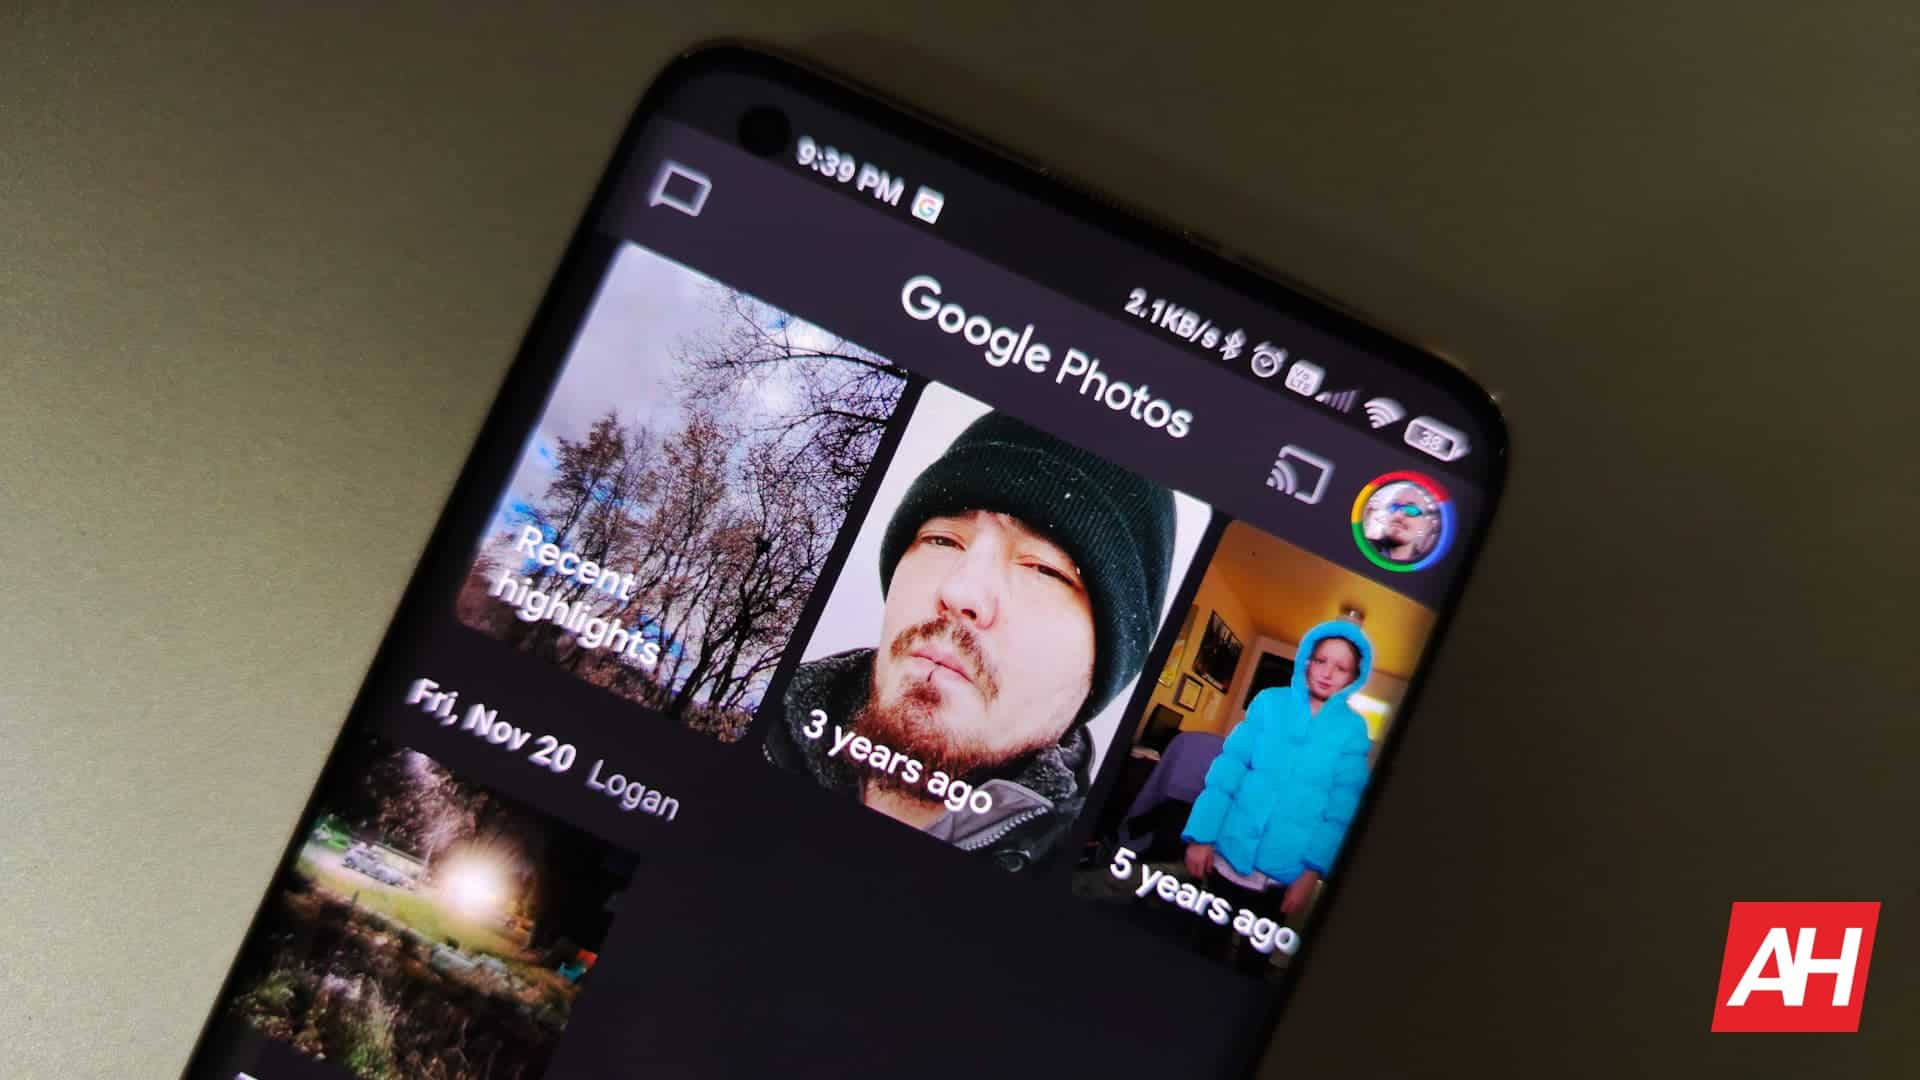 Google Photos sharpening and noise reduction tools rolling out